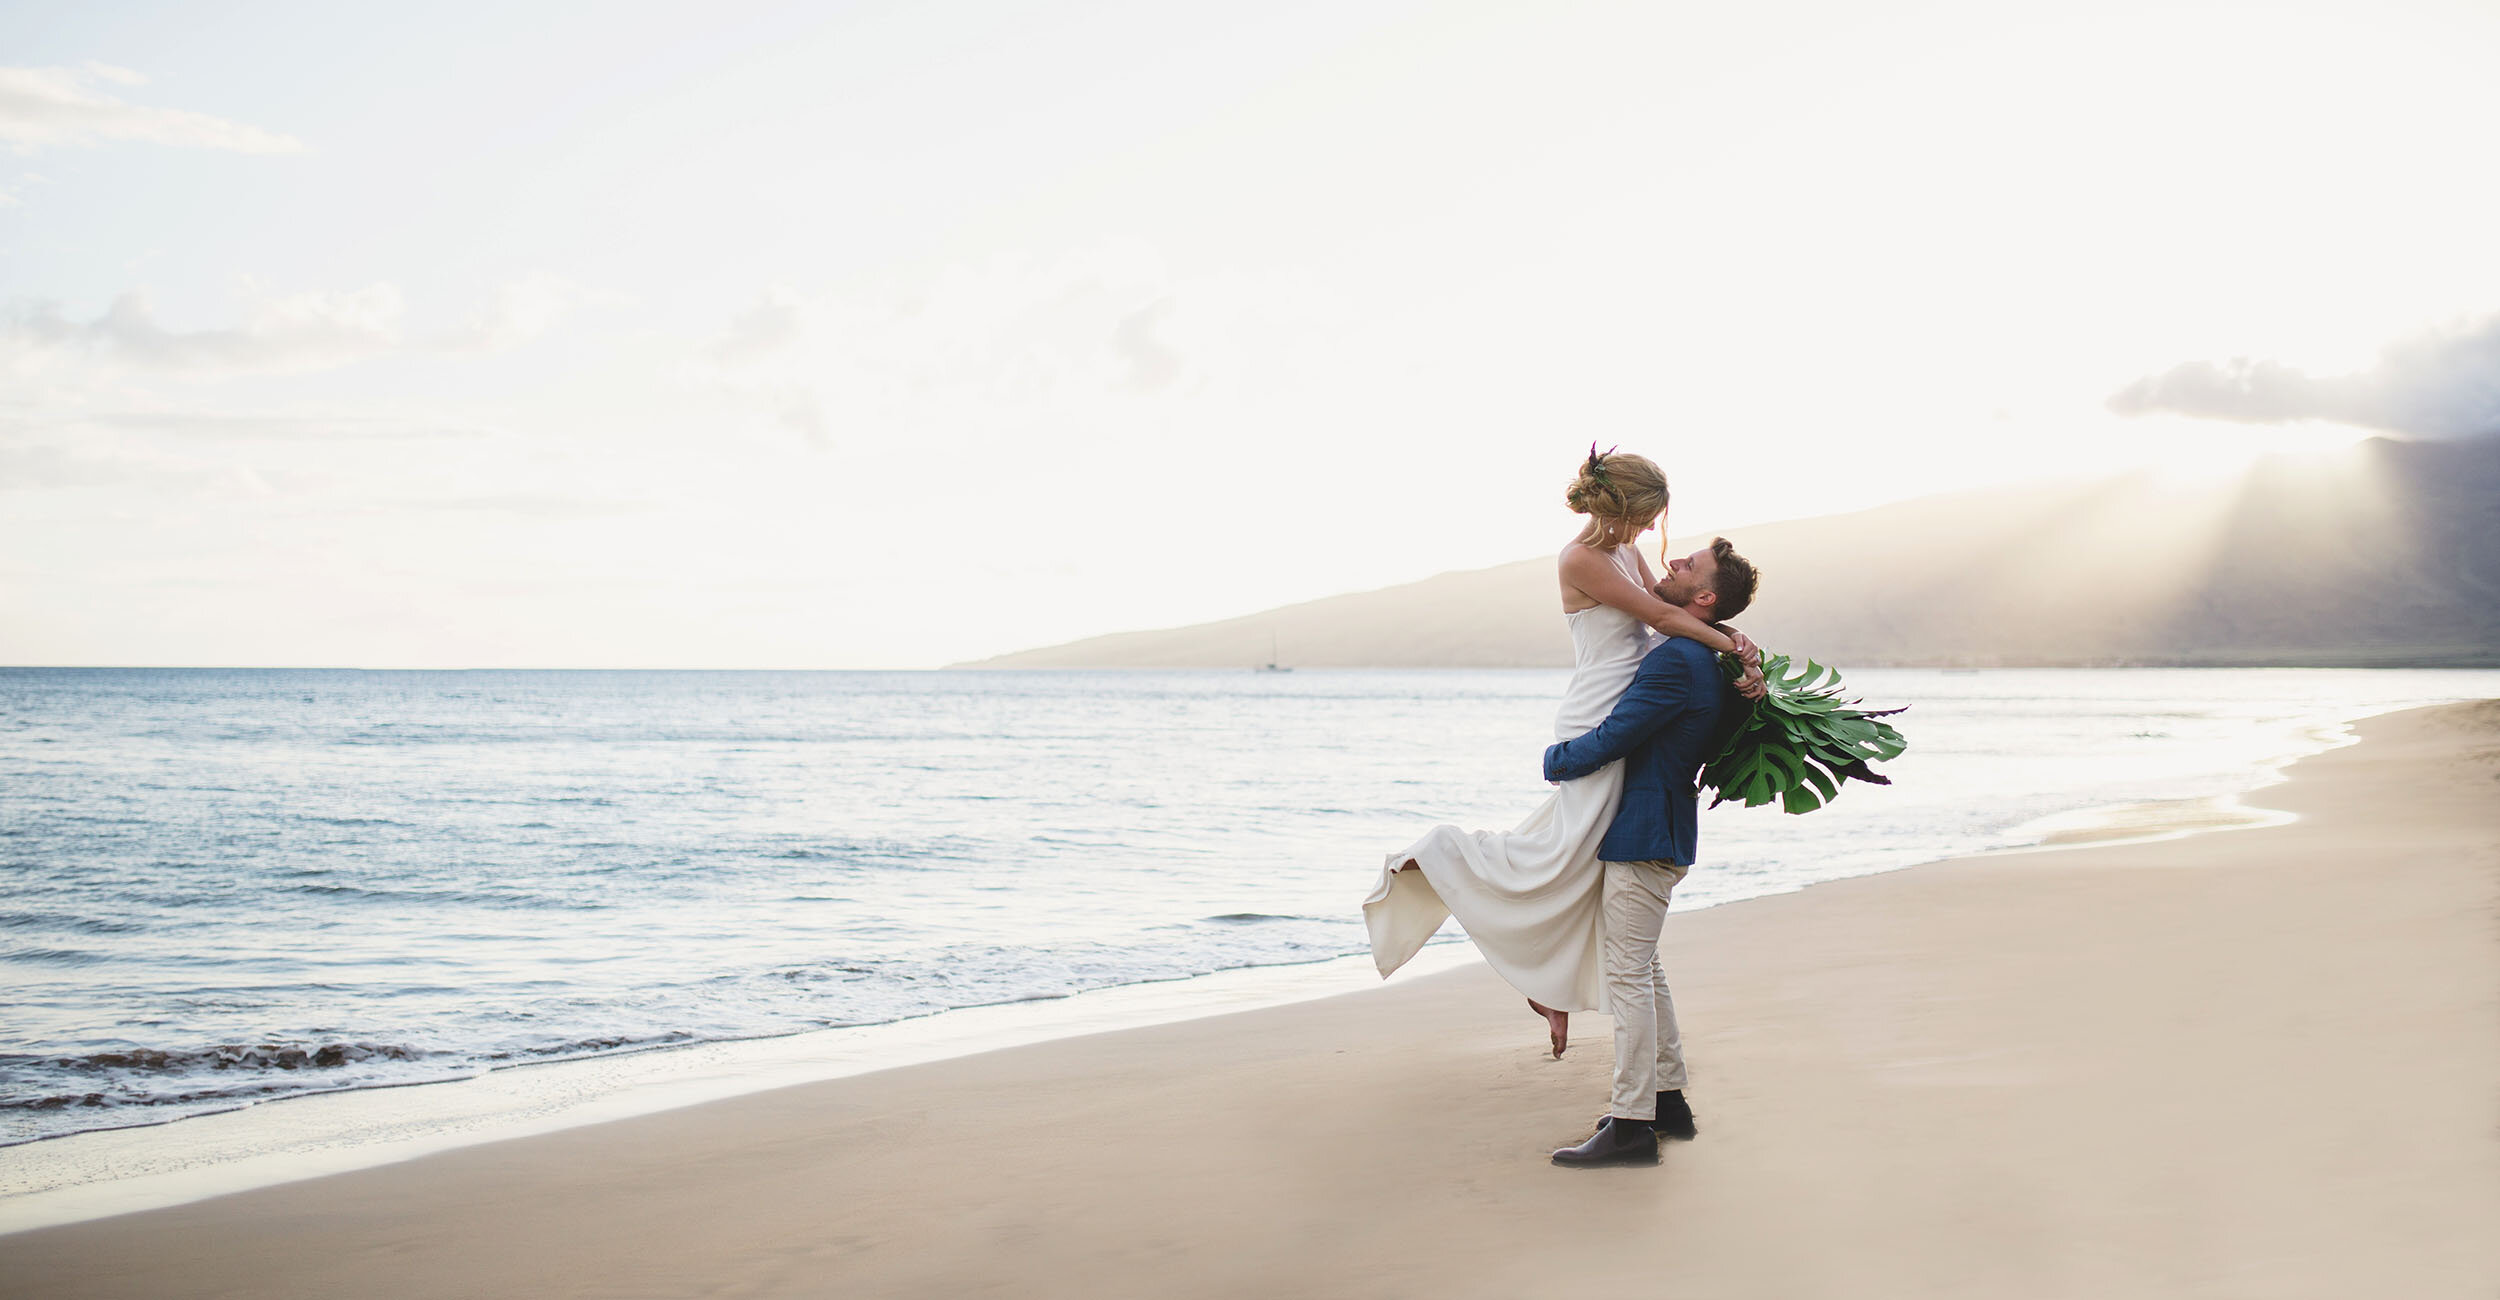 Beach Weddings - A ceremony on one of Maui's stunning public beaches